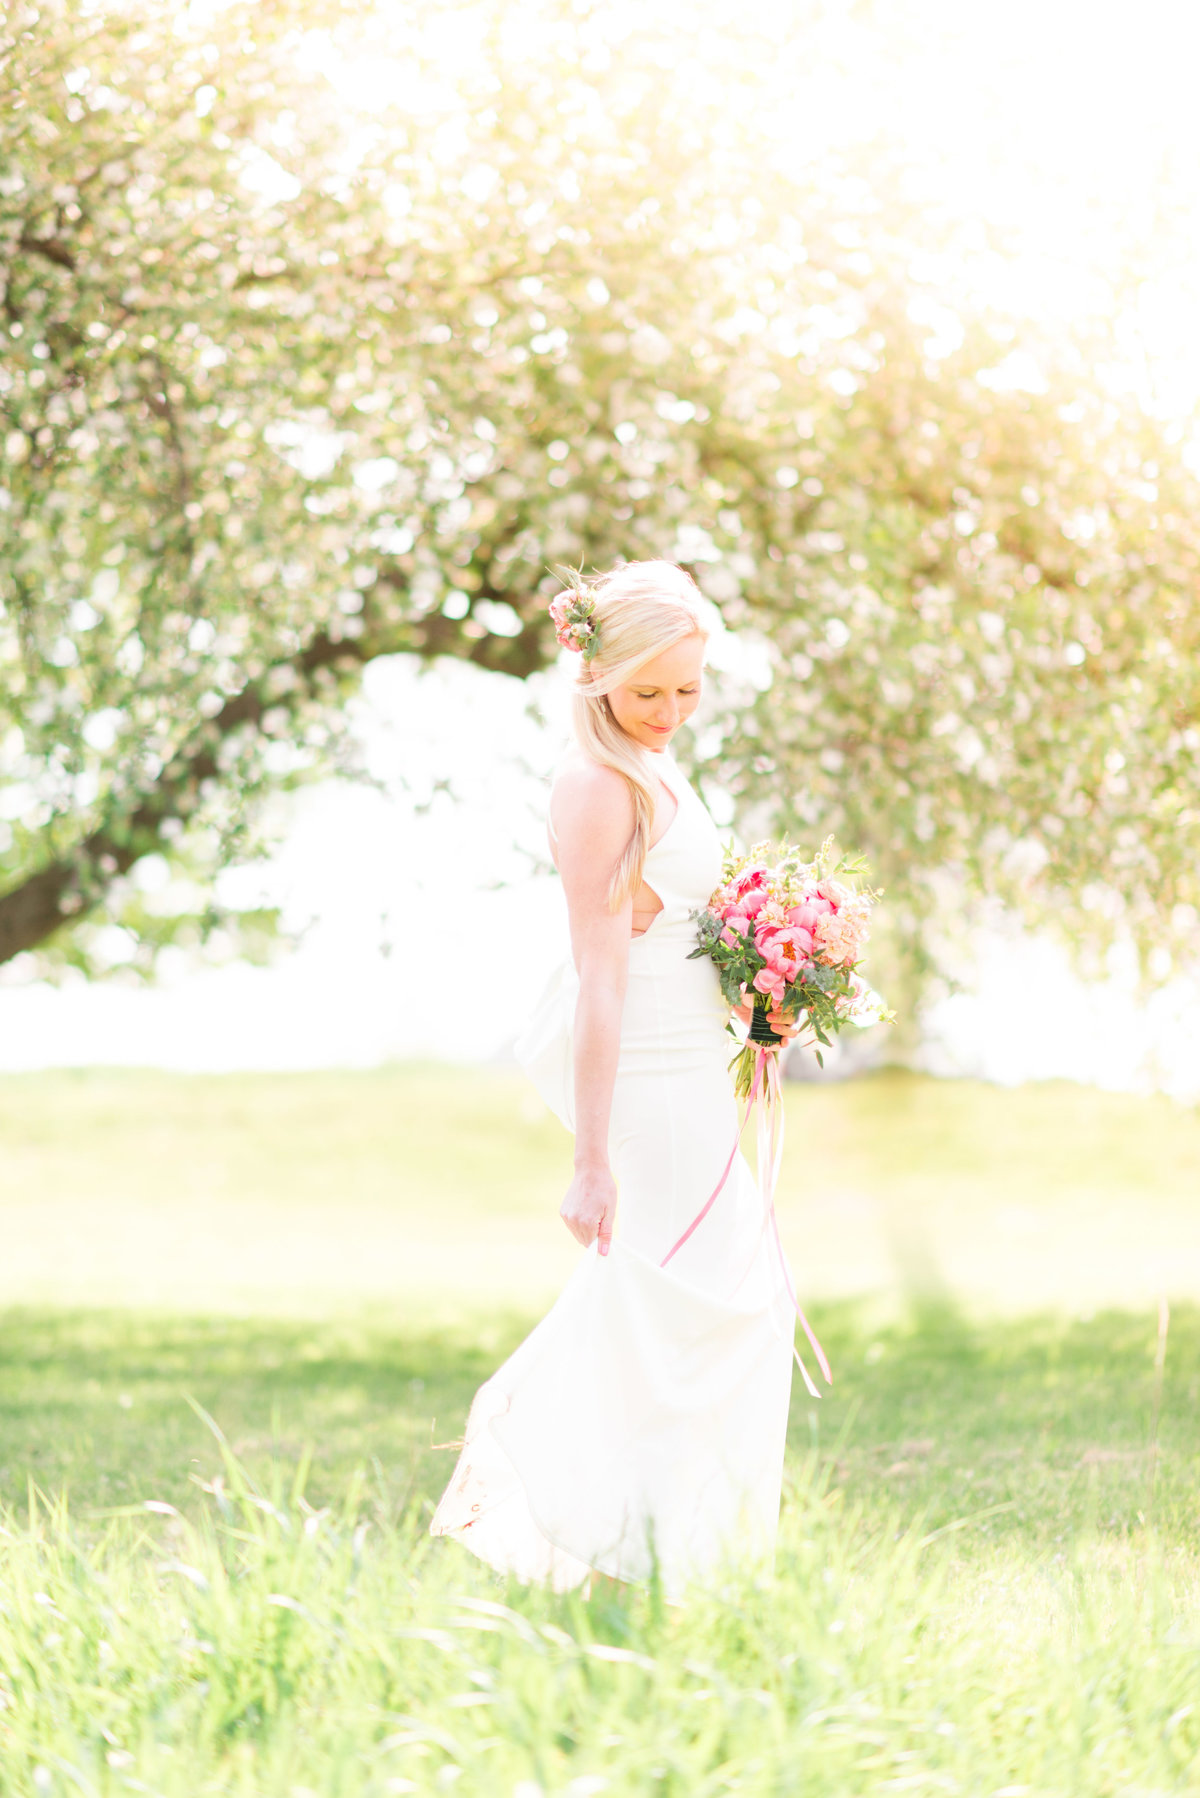 summer cherry blossom wedding photography in northern michigan